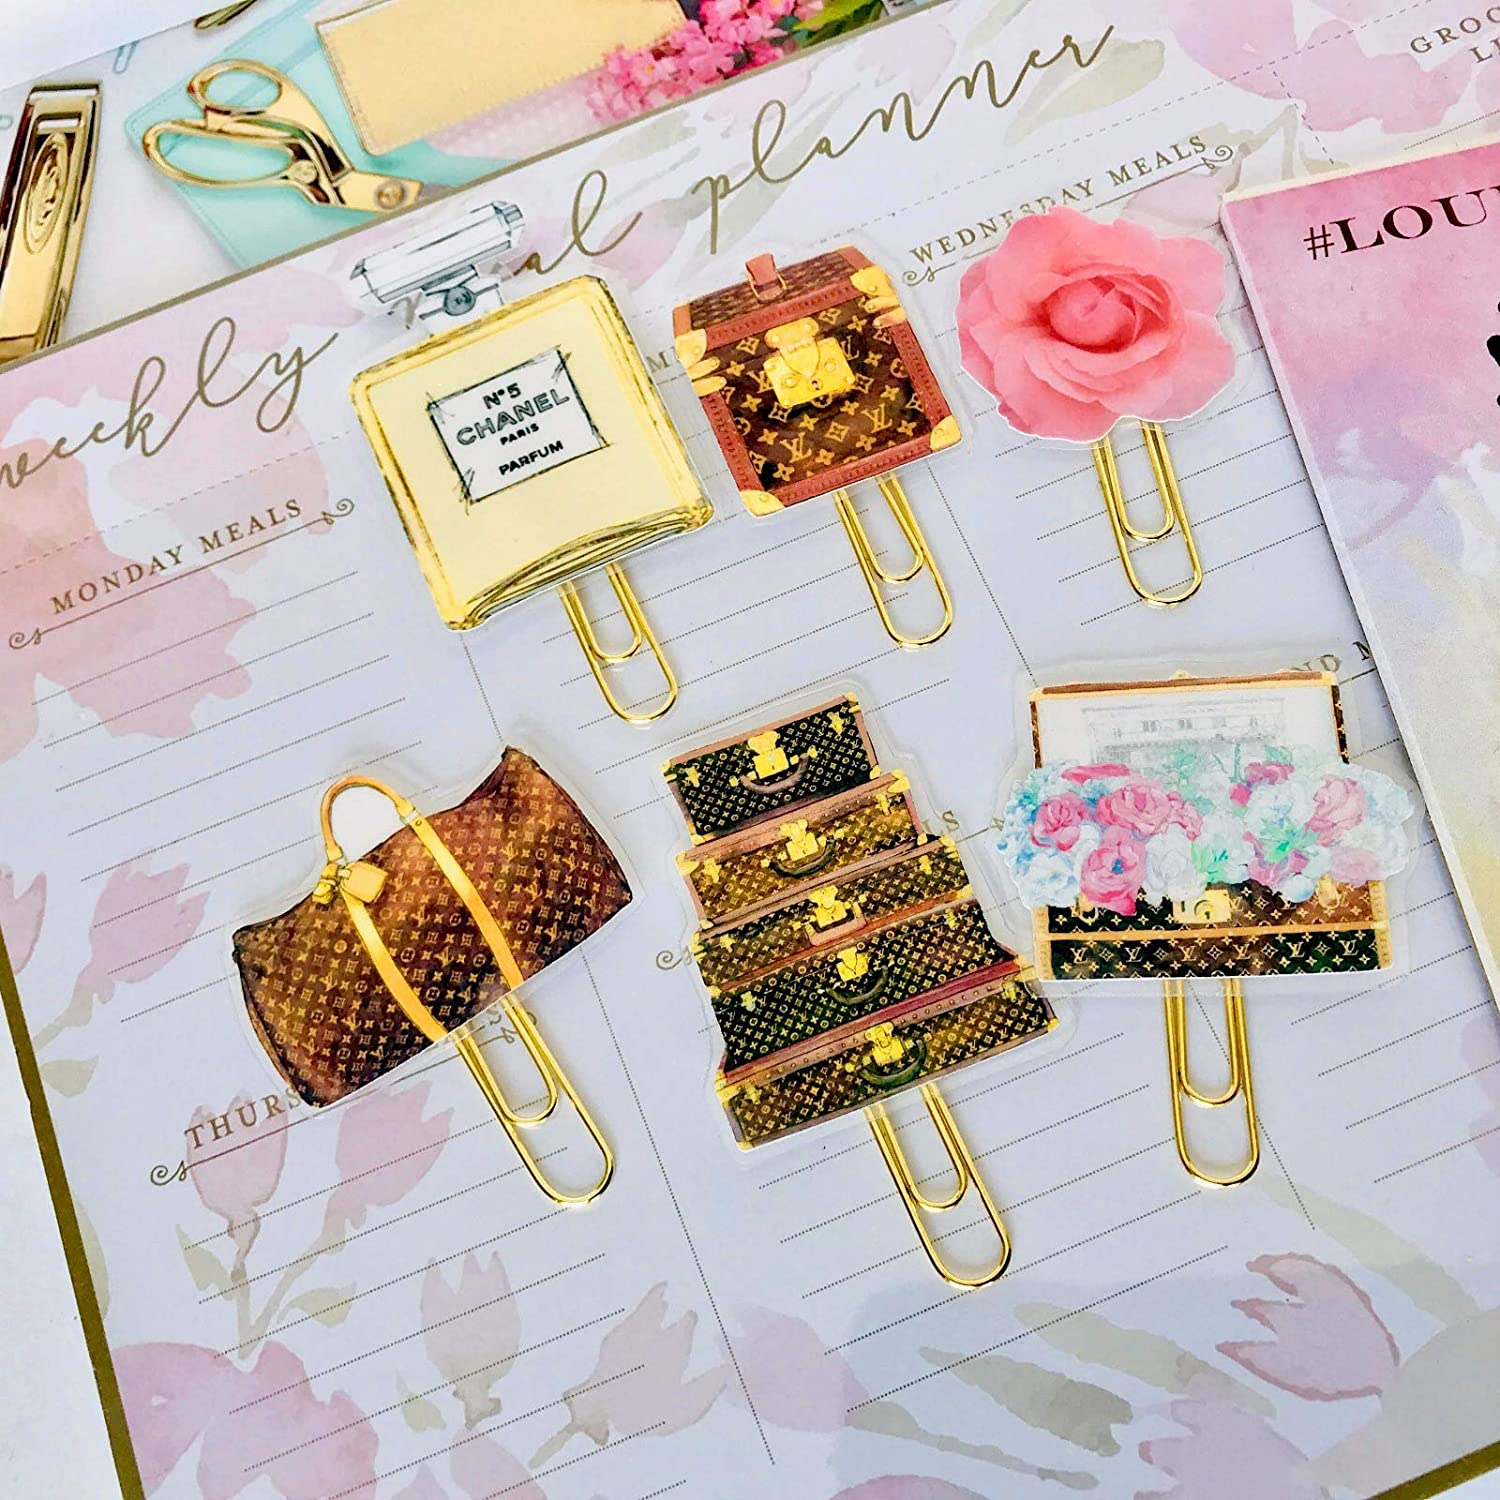 Handmade Laminated Planner Paper Clip Set Journal and Organizer Unique LV Inspired Planner Paper Clip Bookmark Planner Novelty Paper Clips Personal Planner Accessory Happy Planner |